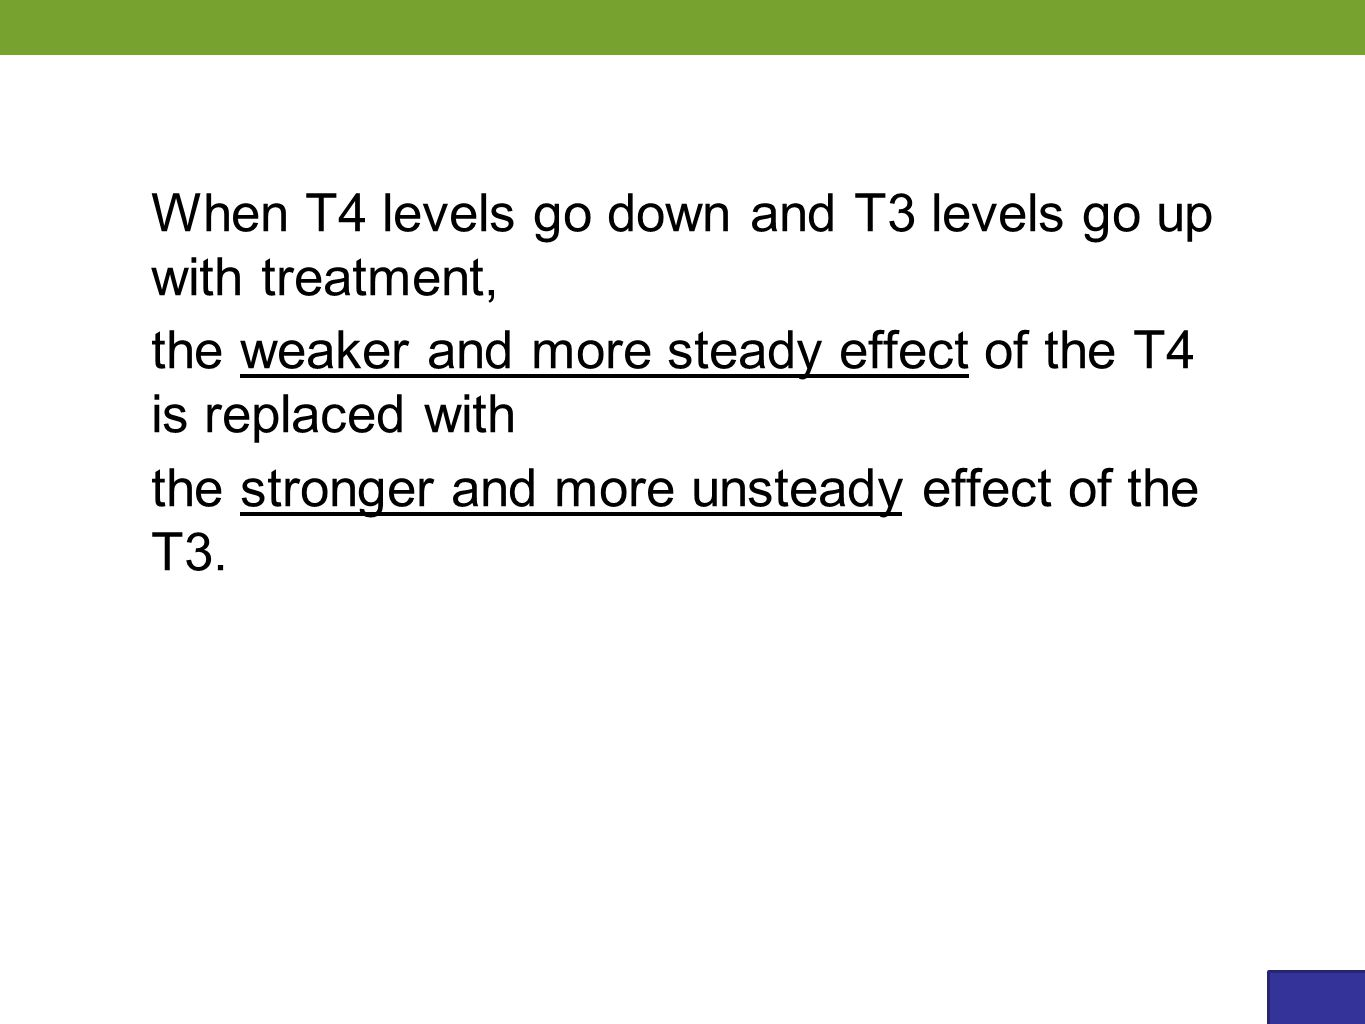 When T4 levels go down and T3 levels go up with treatment, the weaker and more steady effect of the T4 is replaced with the stronger and more unsteady effect of the T3.